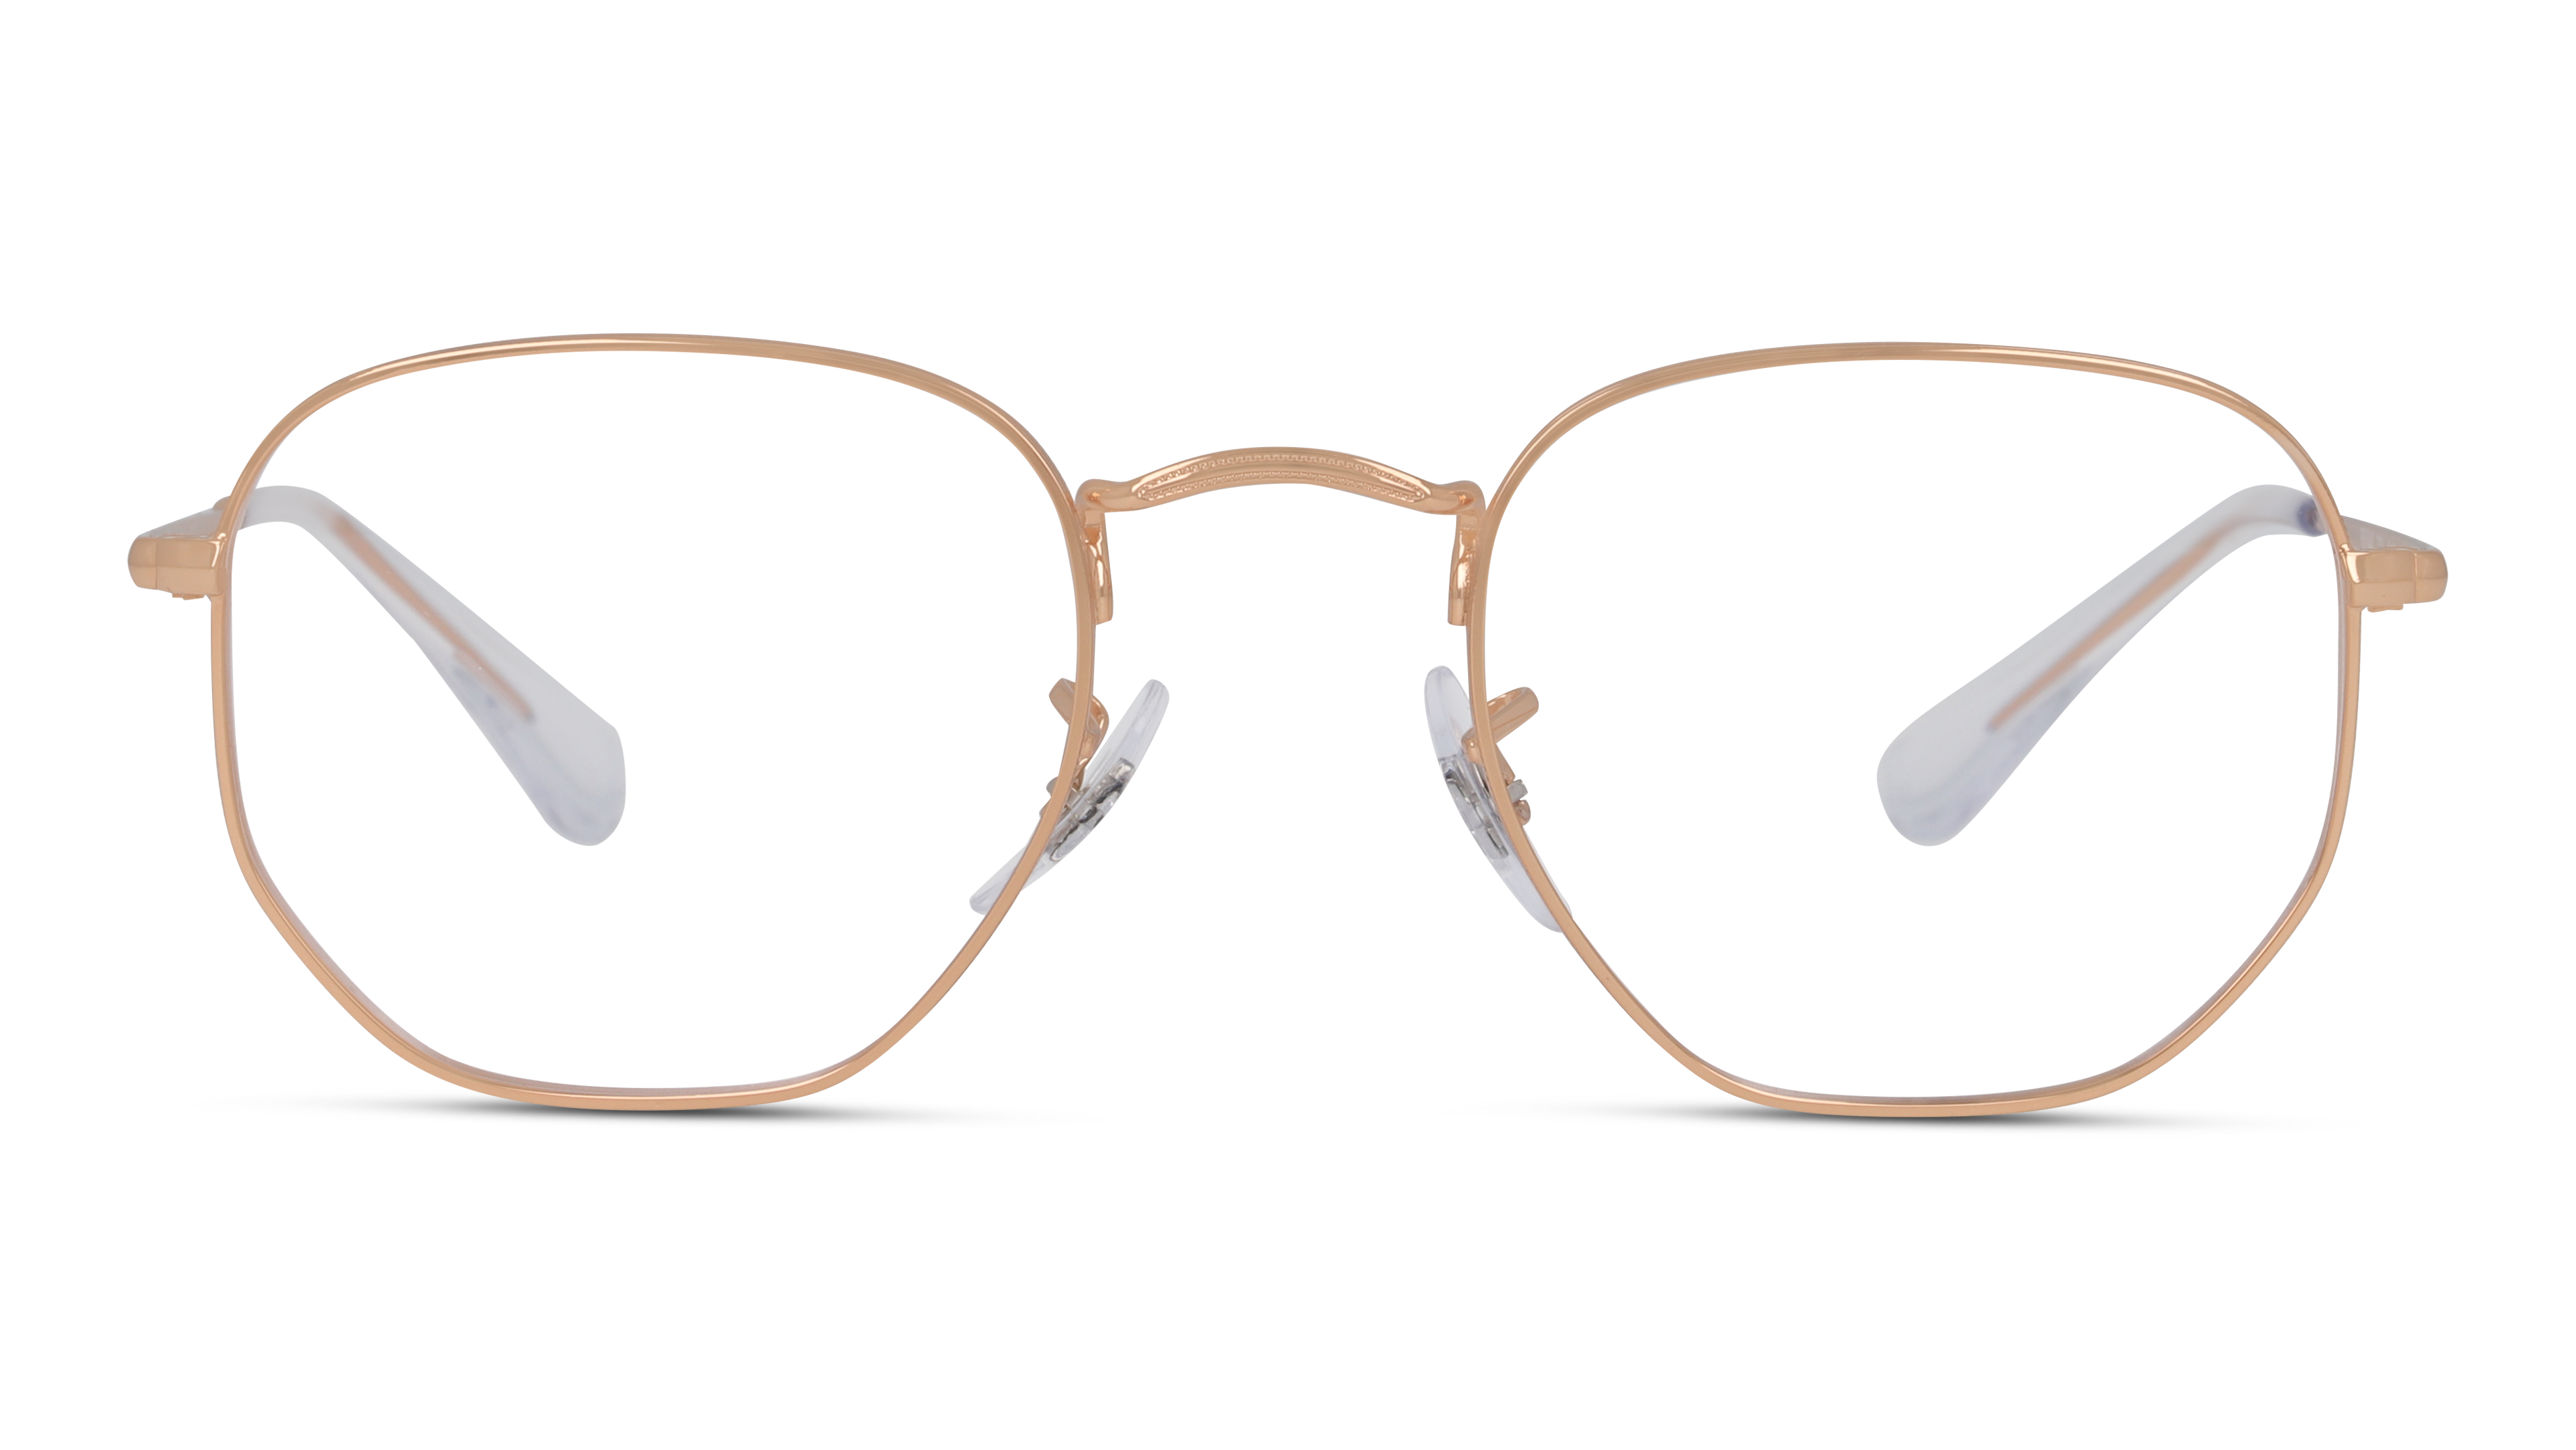 Front Ray-Ban Ray-Ban 0RX6448 3094 51/21 Roze, Goud